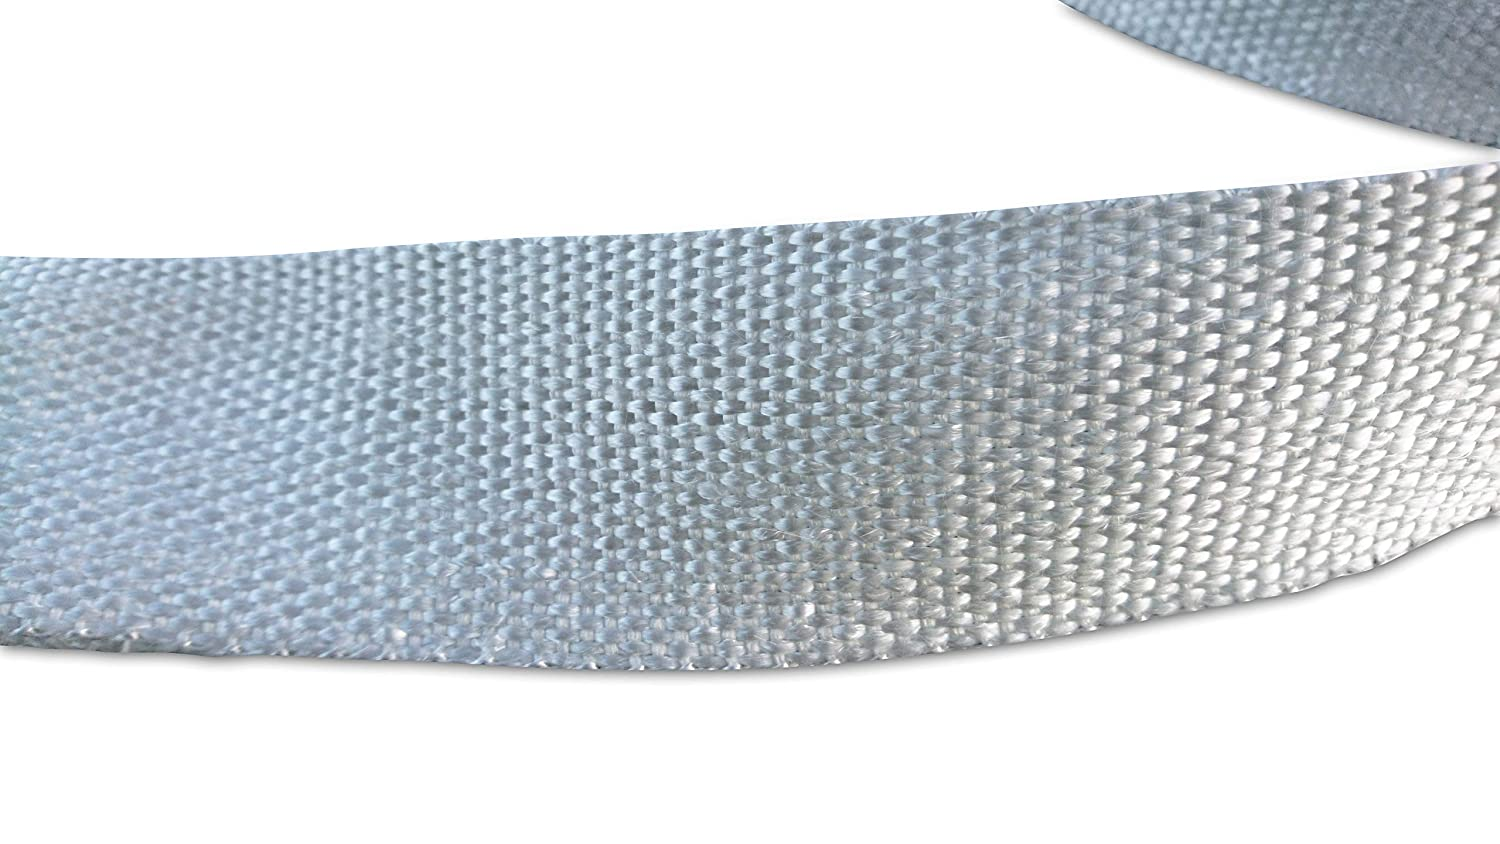 FireProof Exhaust wrap and insulation 1.5mm x 50mm UK manufacture 30 metres